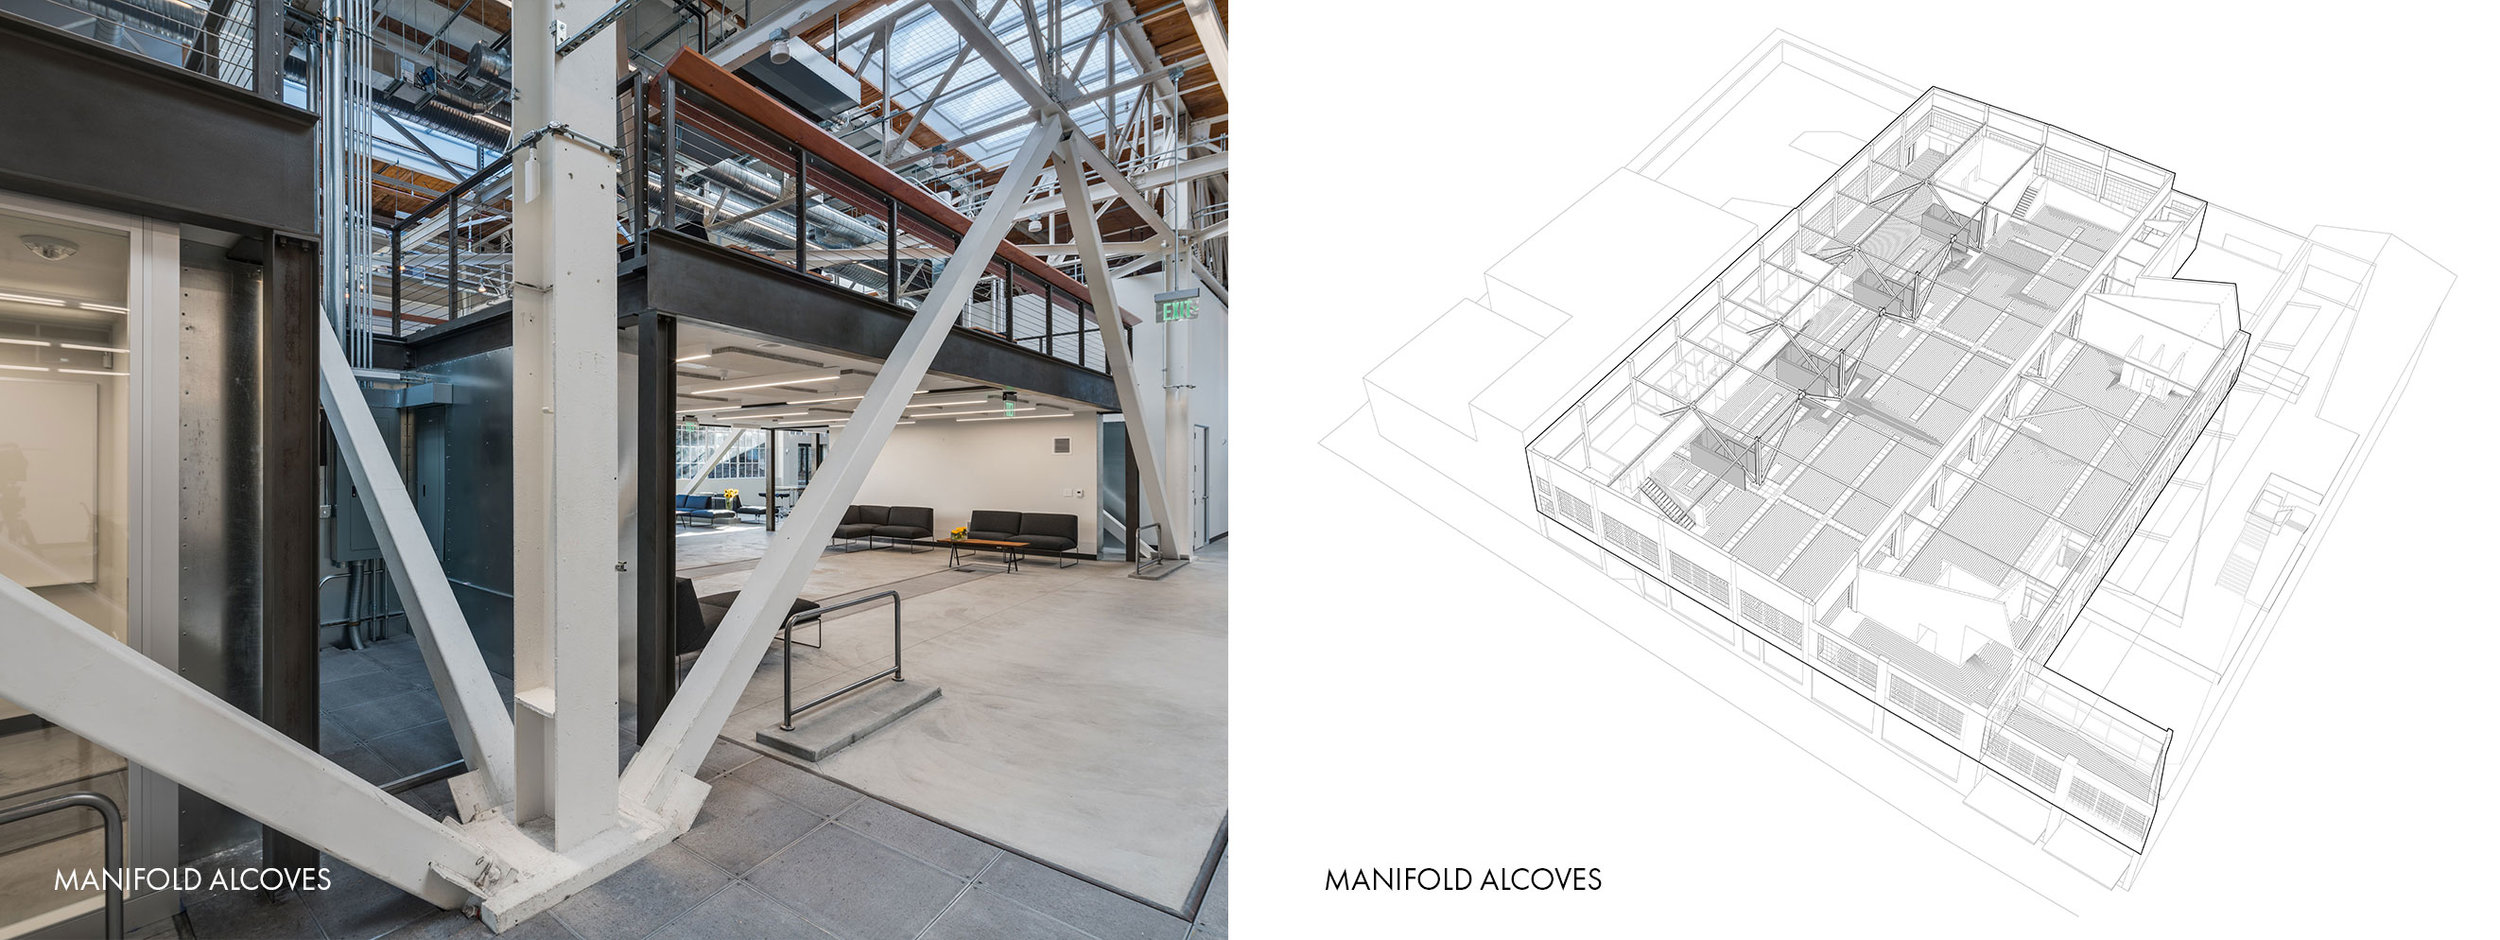 San Francisco Workplace, Office, Adaptive Reuse, Tech Company, Flexible Workspace, Radiant Heating, Data Trench, Systems Integration